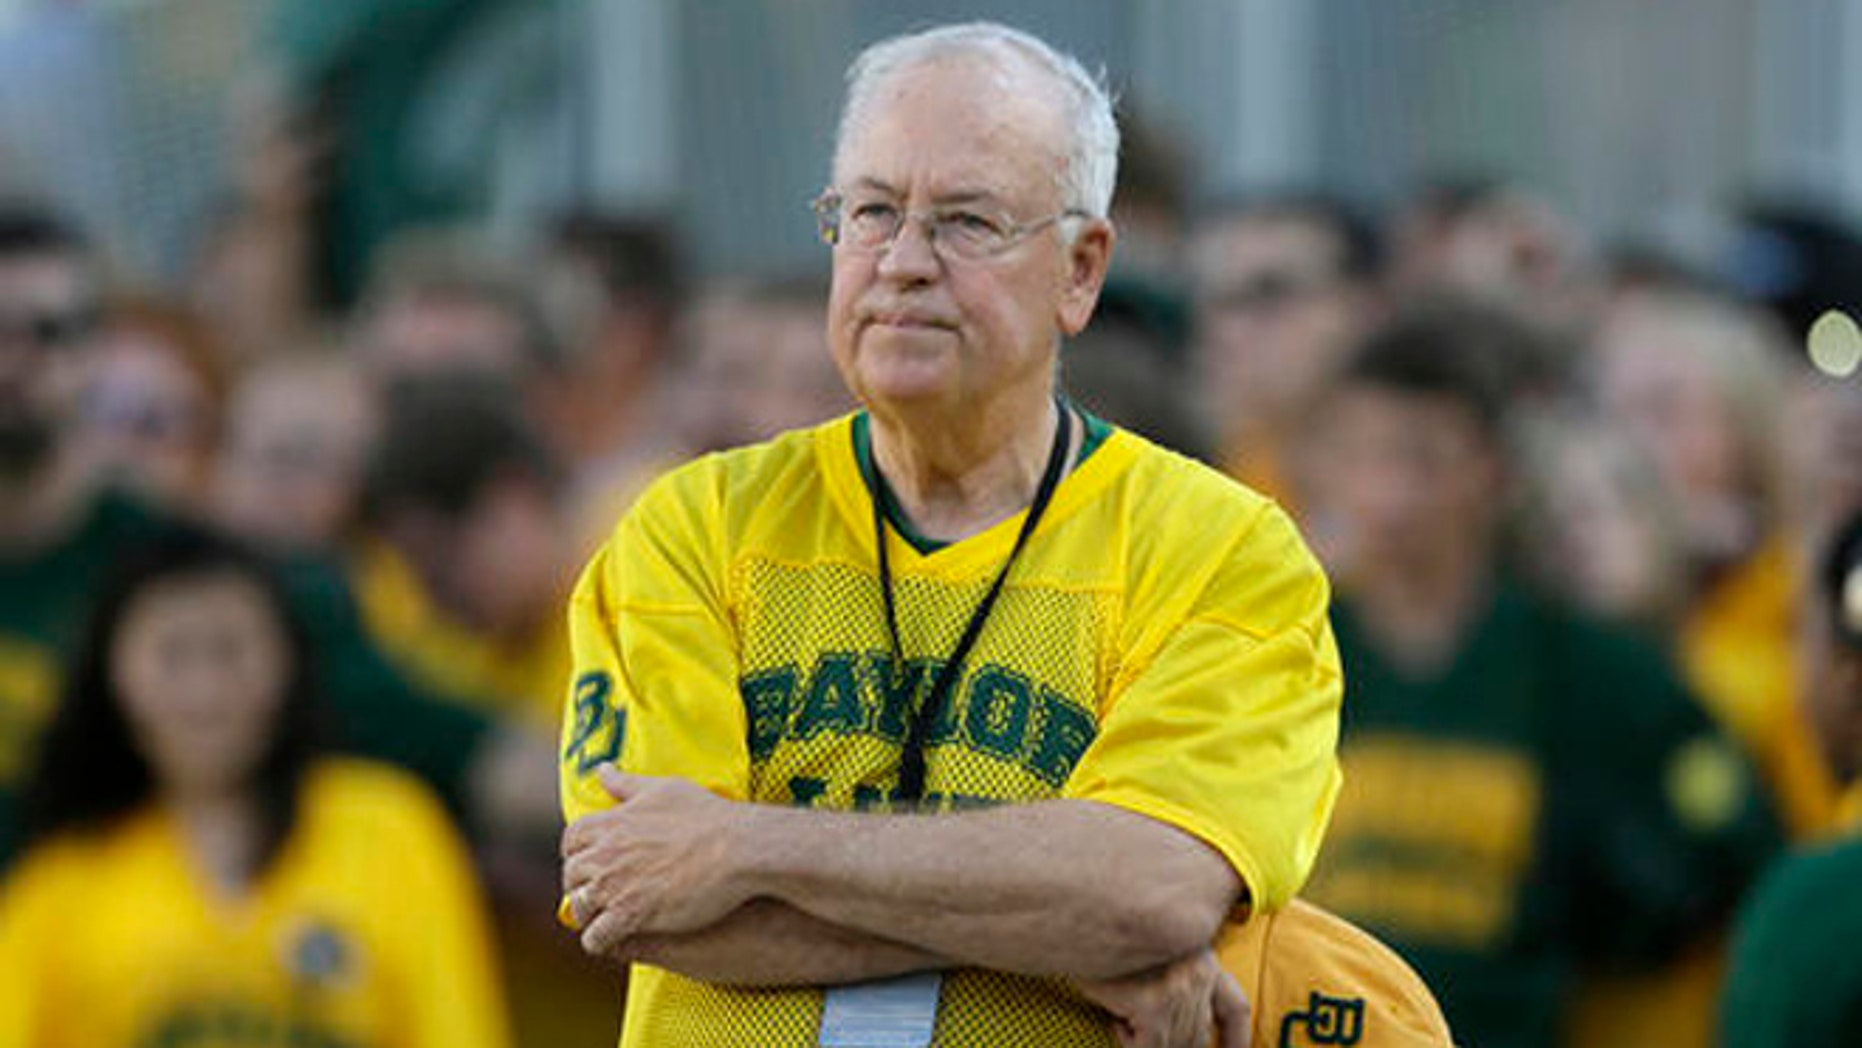 In the Sept. 12, 2015 file photo, Baylor President Ken Starr waits to run onto the field before an NCAA college football game in Waco, Texas.